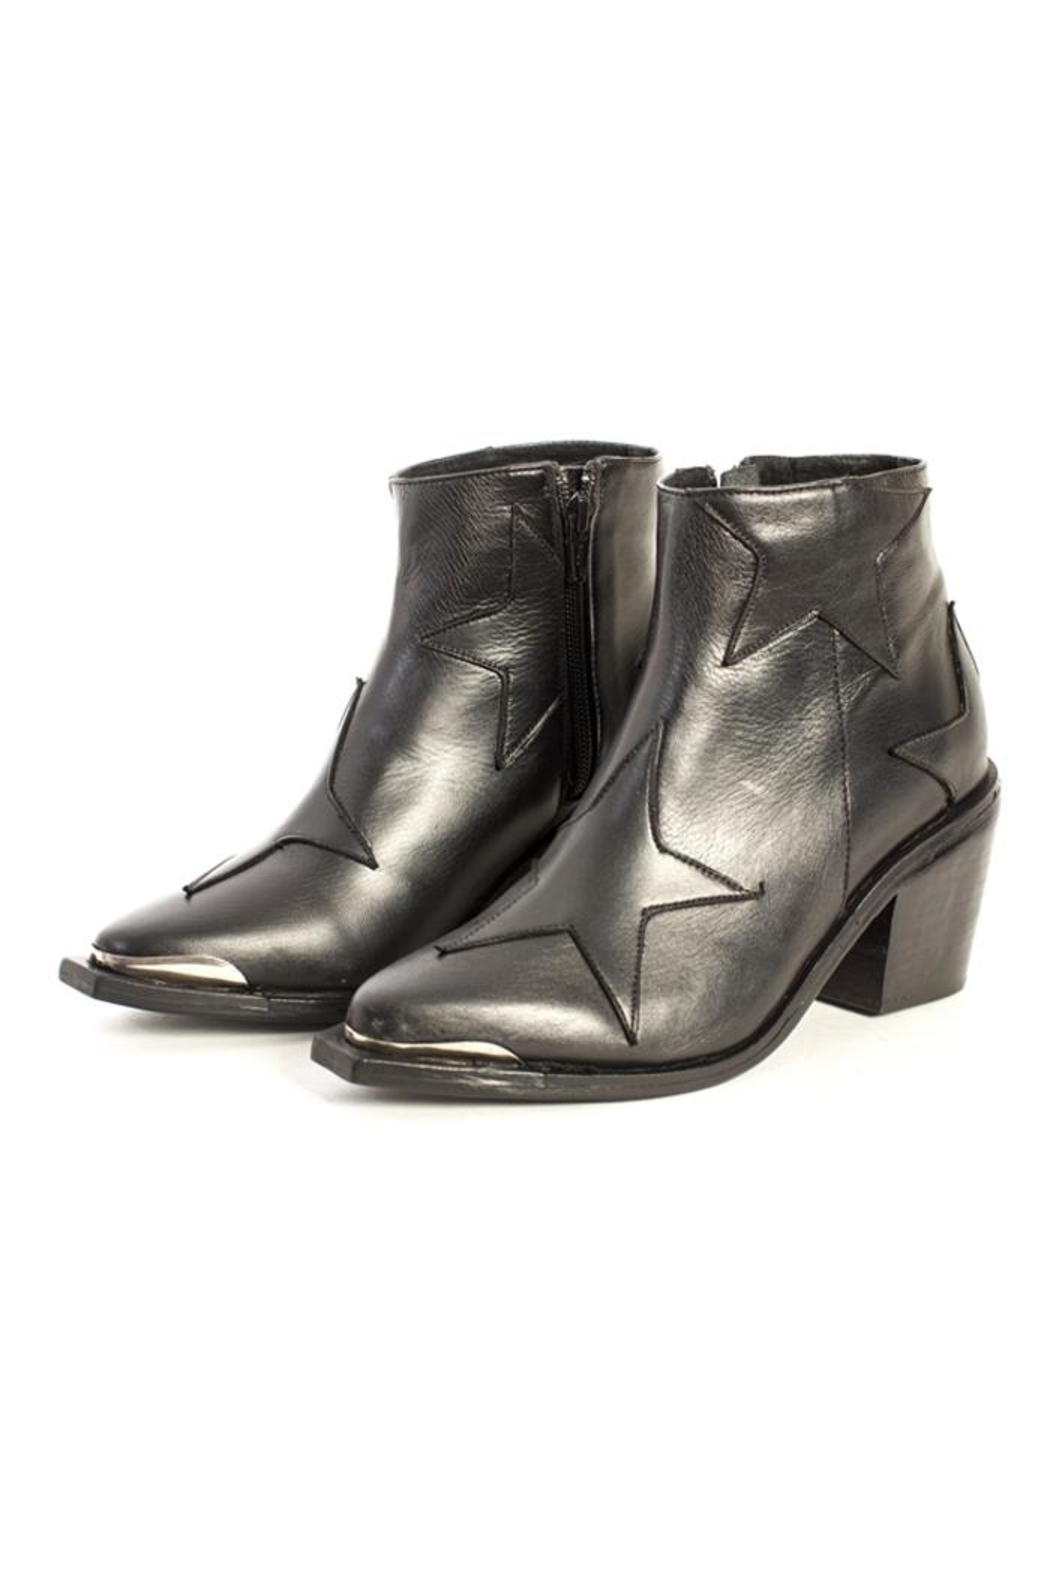 1436241a6 CHAO Sam Star Boots from Buenos Aires — Shoptiques